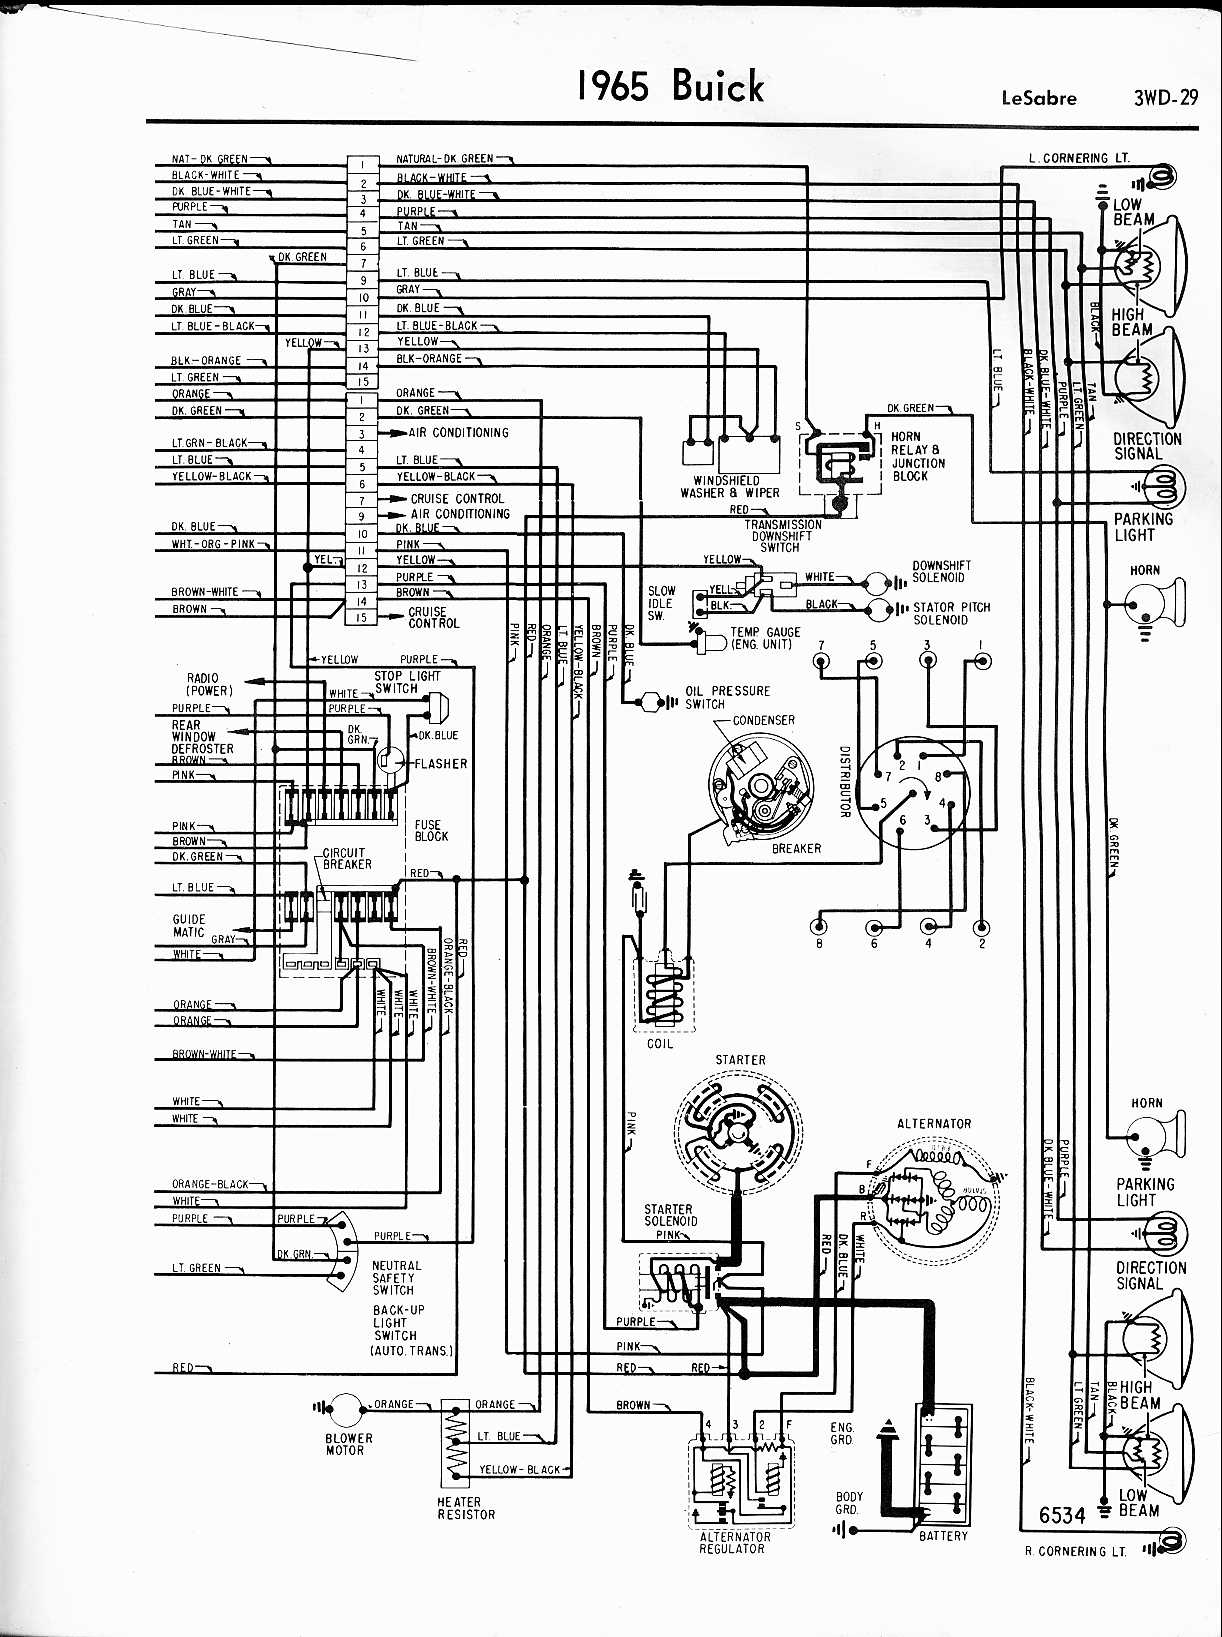 Pleasant Datsun Roadster Wiring Diagram Get Free Image About Wiring Diagram Wiring Digital Resources Ommitdefiancerspsorg